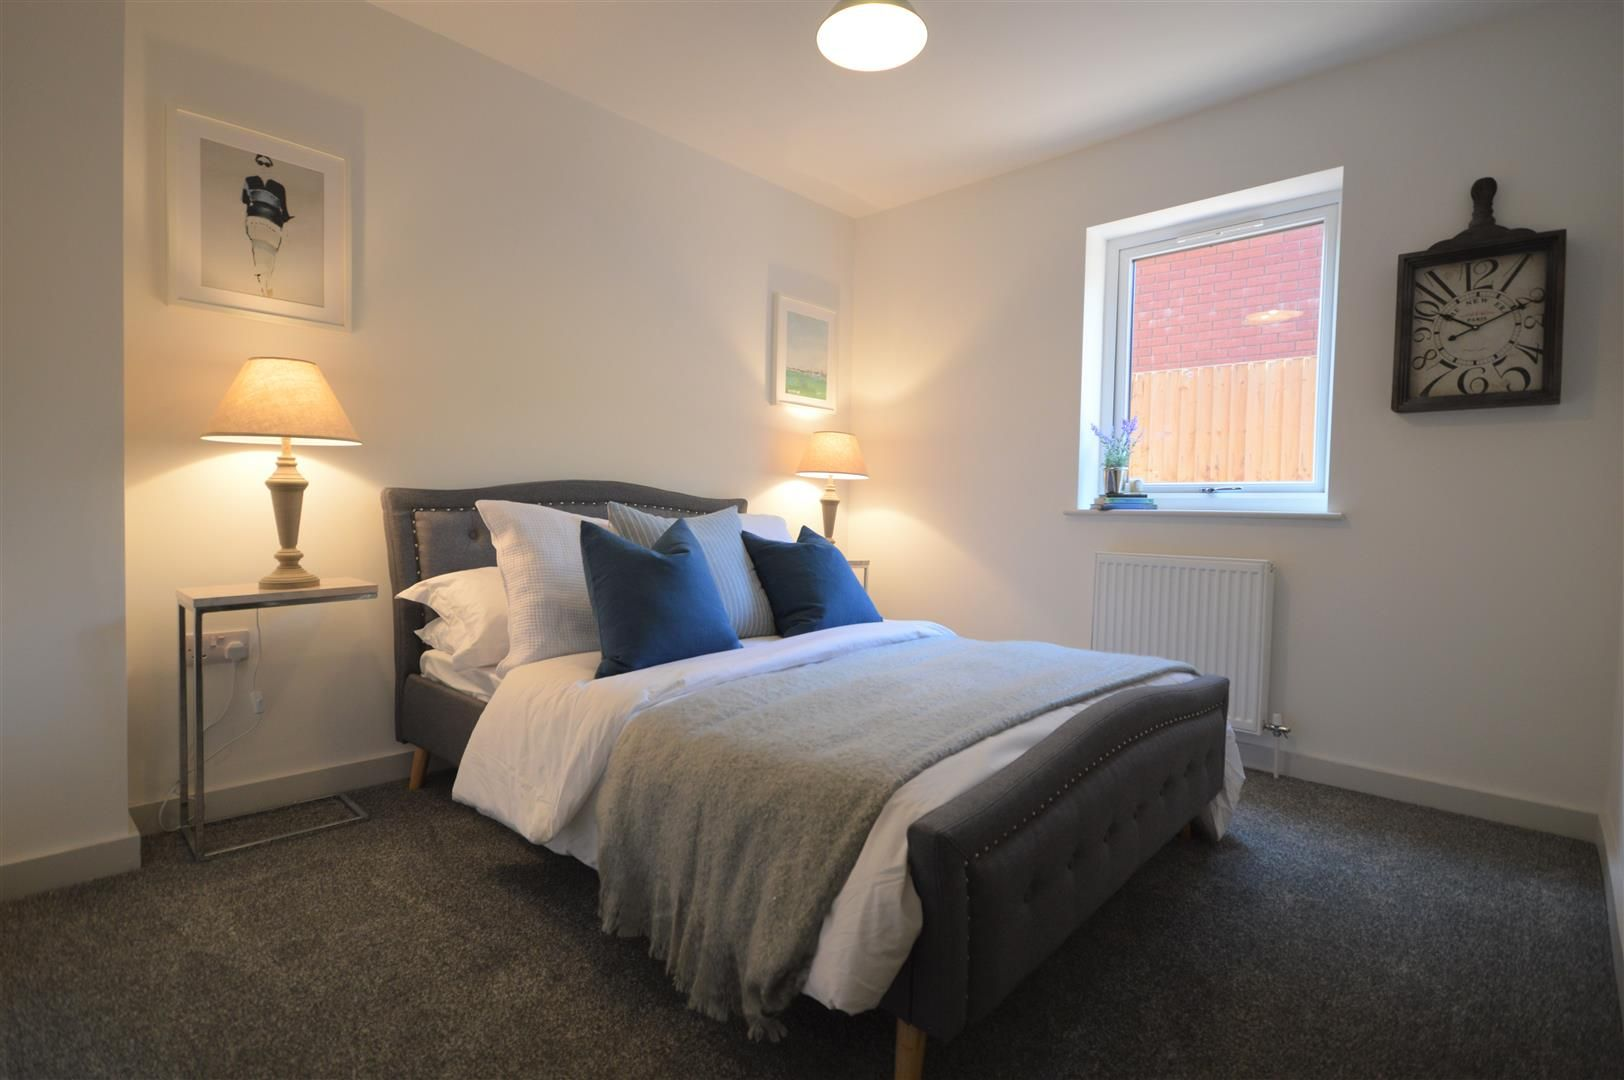 2 bed house for sale in Leominster 12